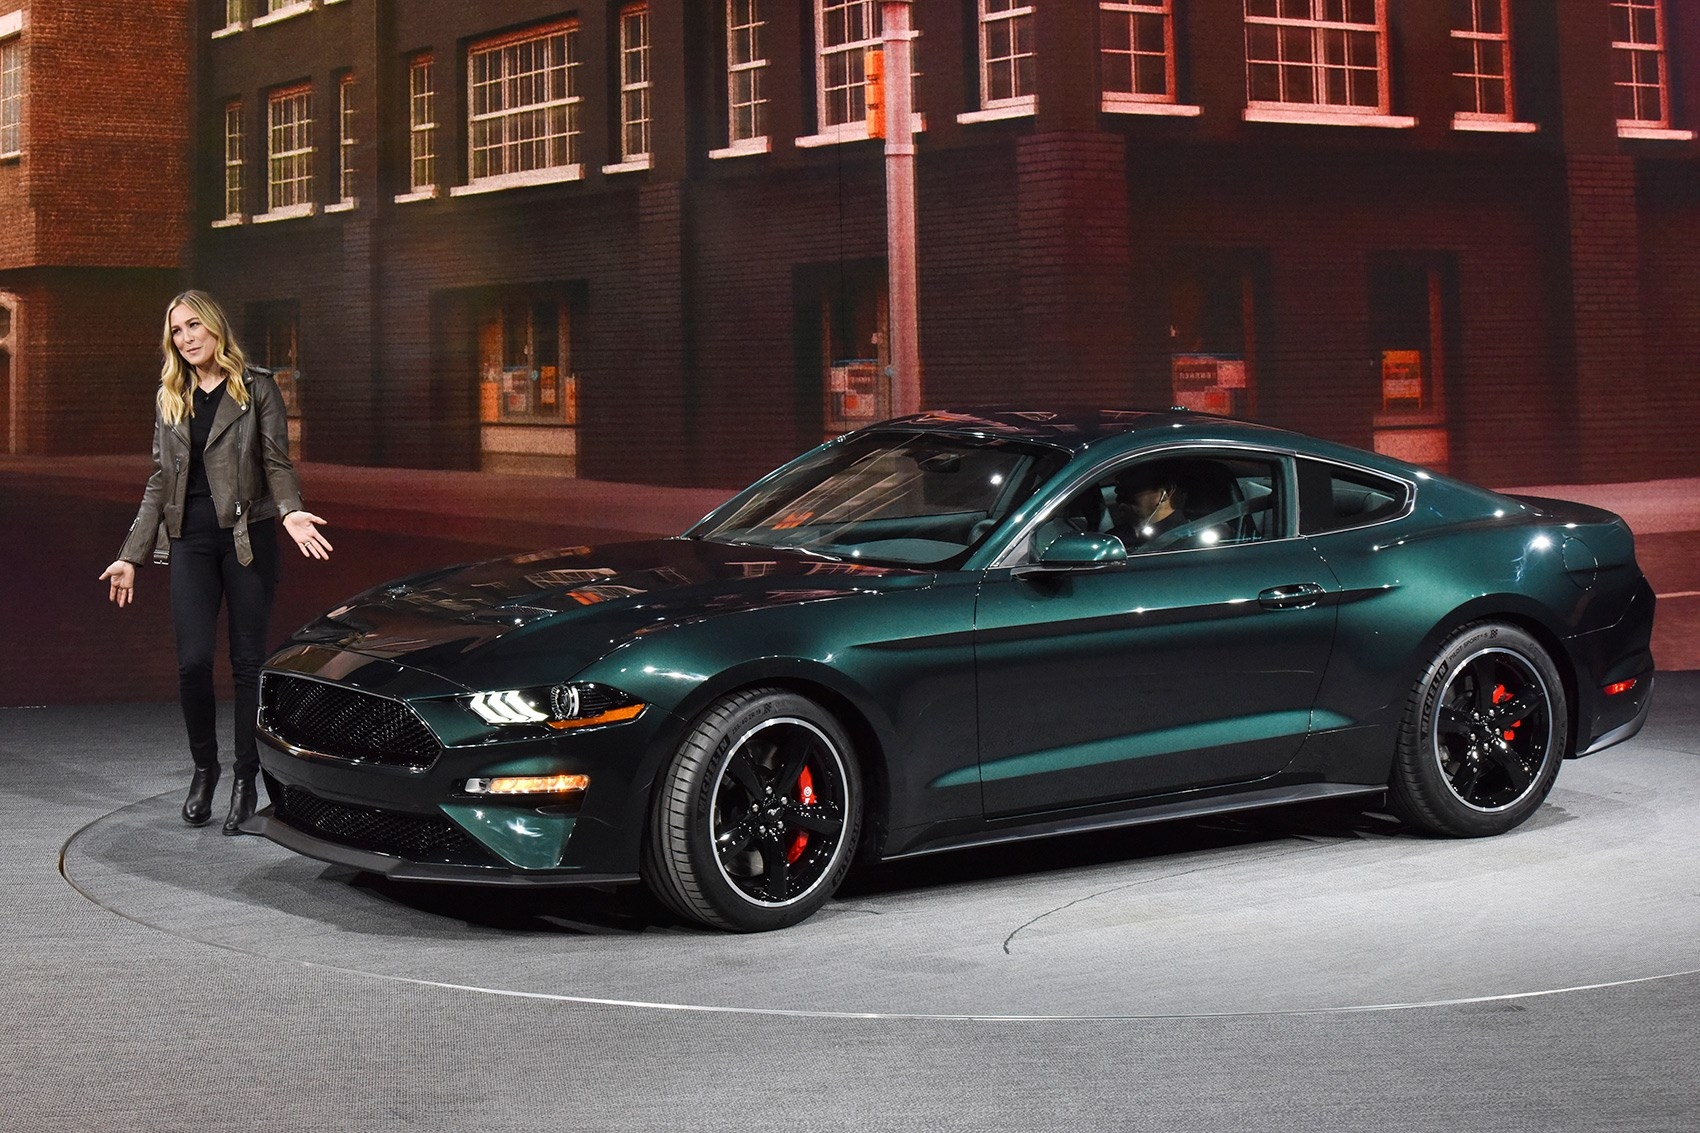 Mini Supercars For Sale >> Ford Mustang Bullitt: UK price revealed | CAR Magazine